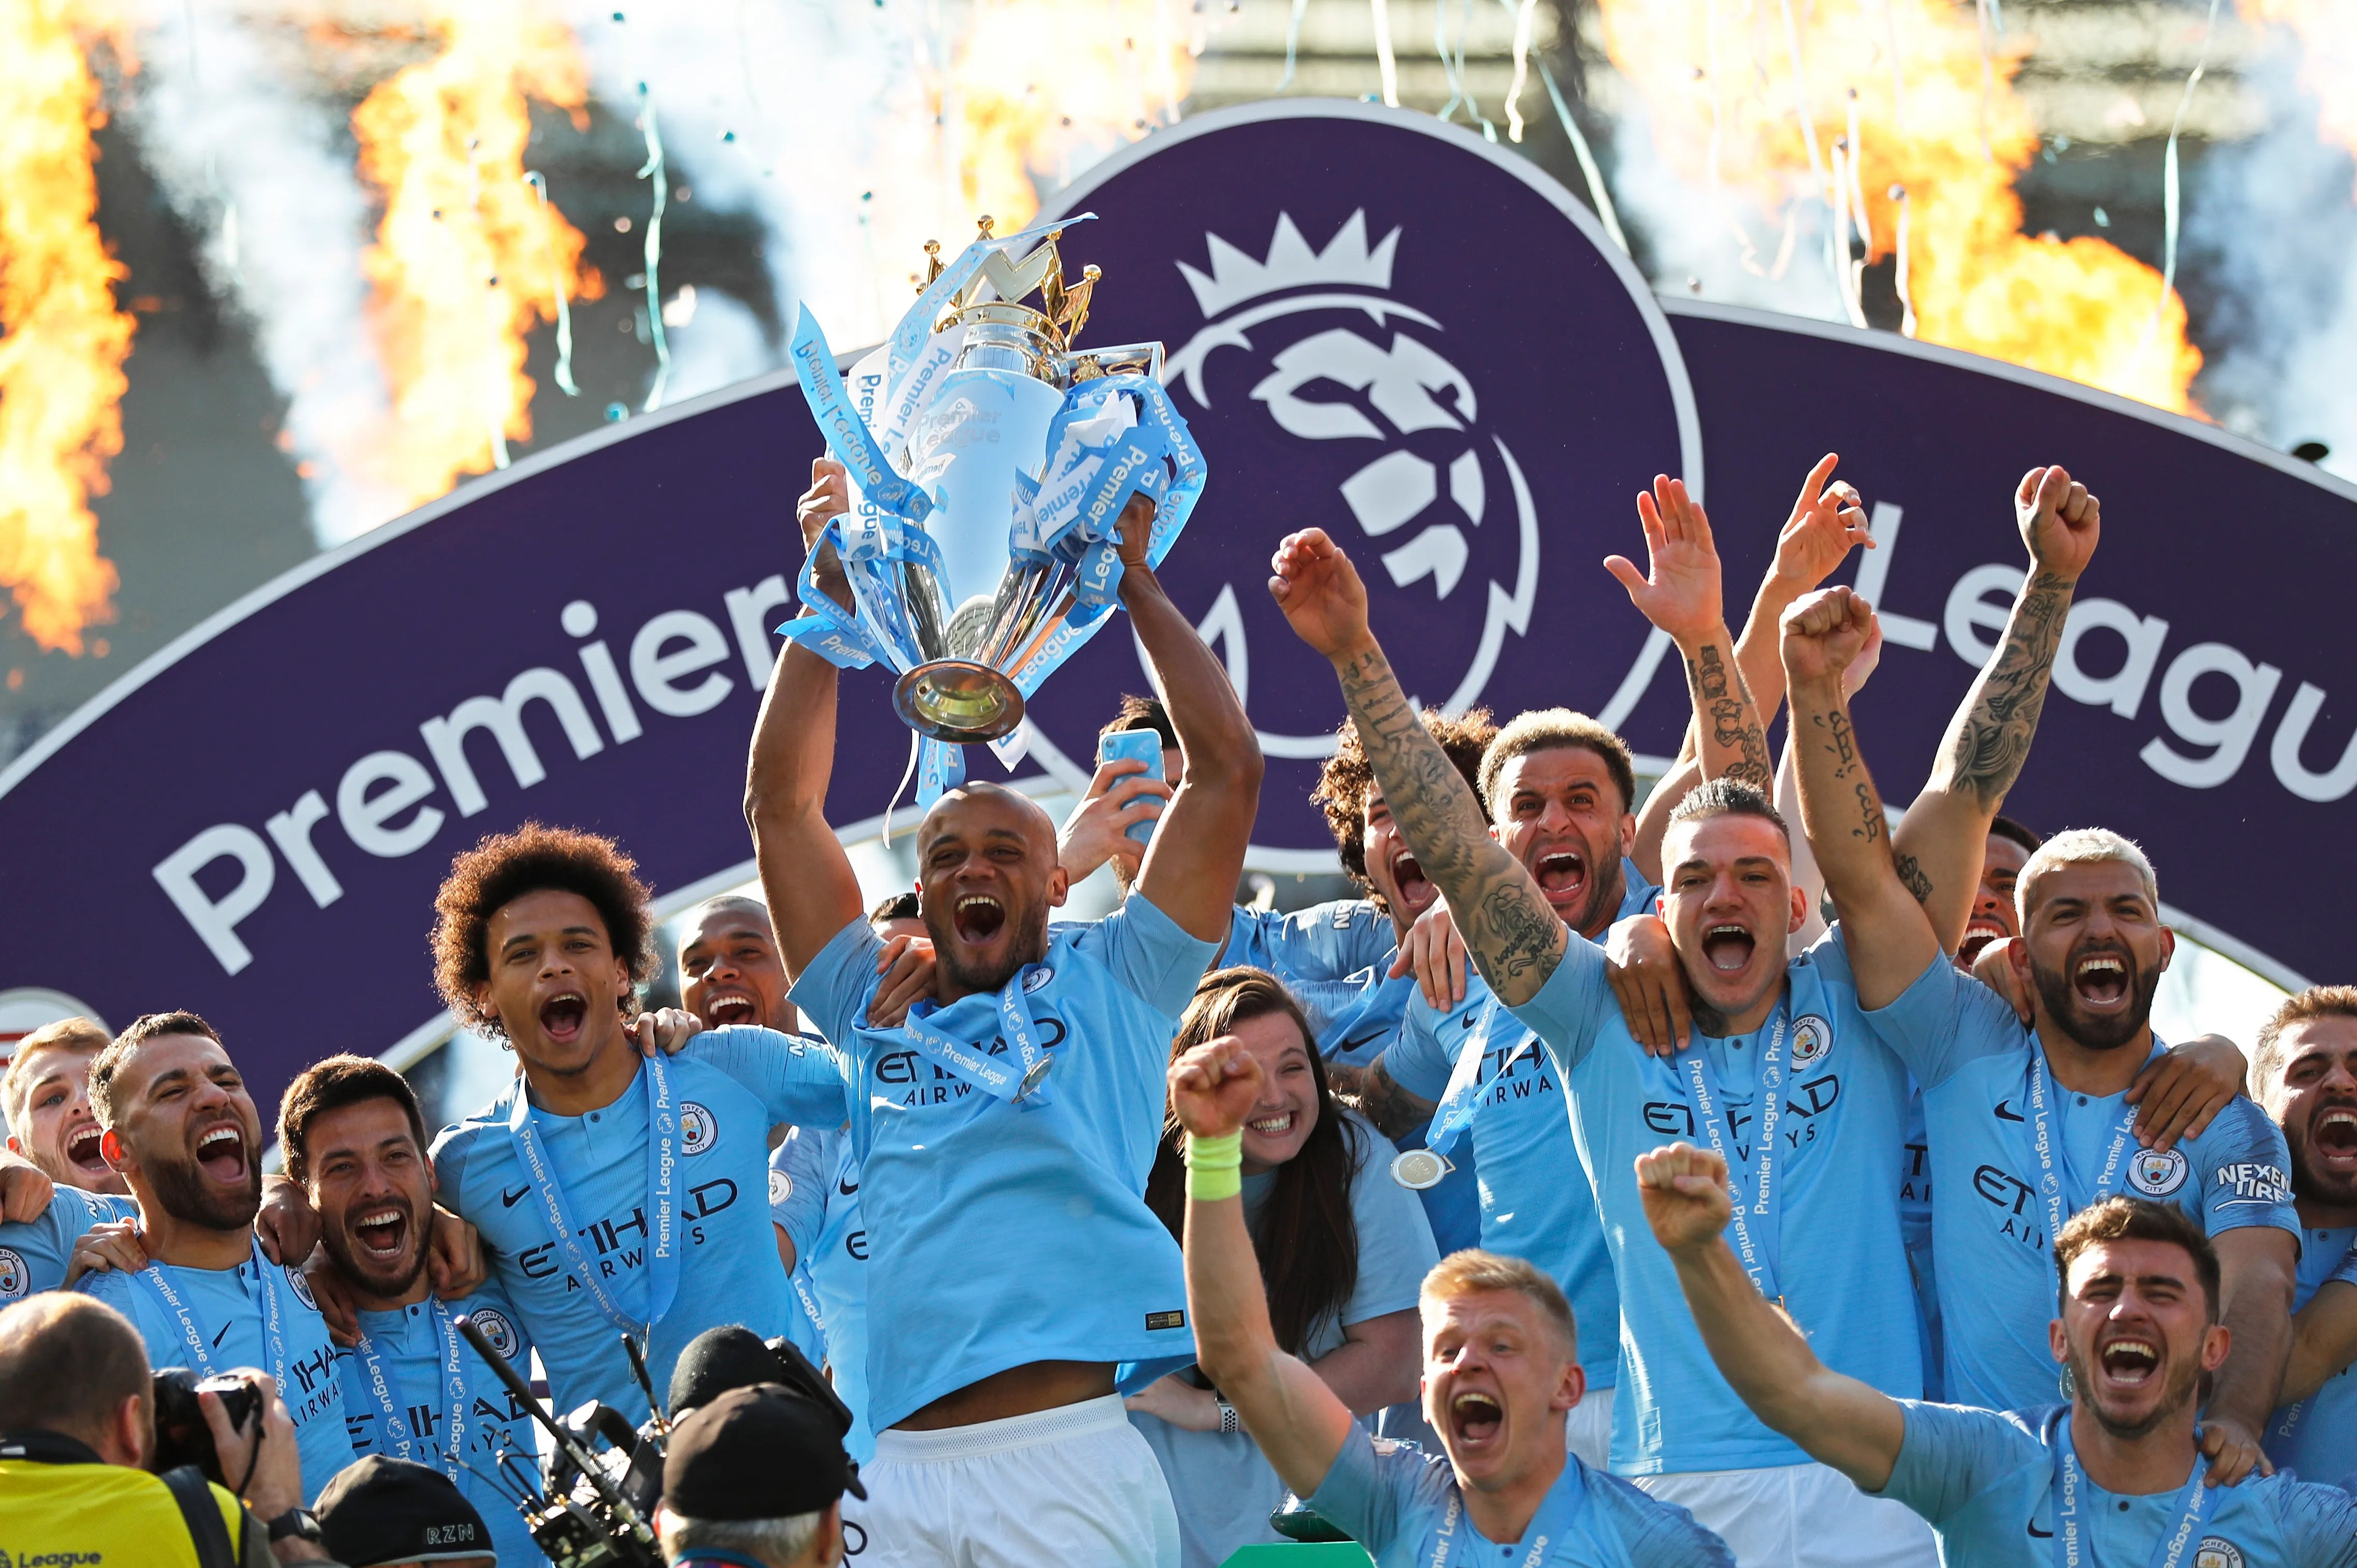 Manchester City Wins Second Straight Premier League Title